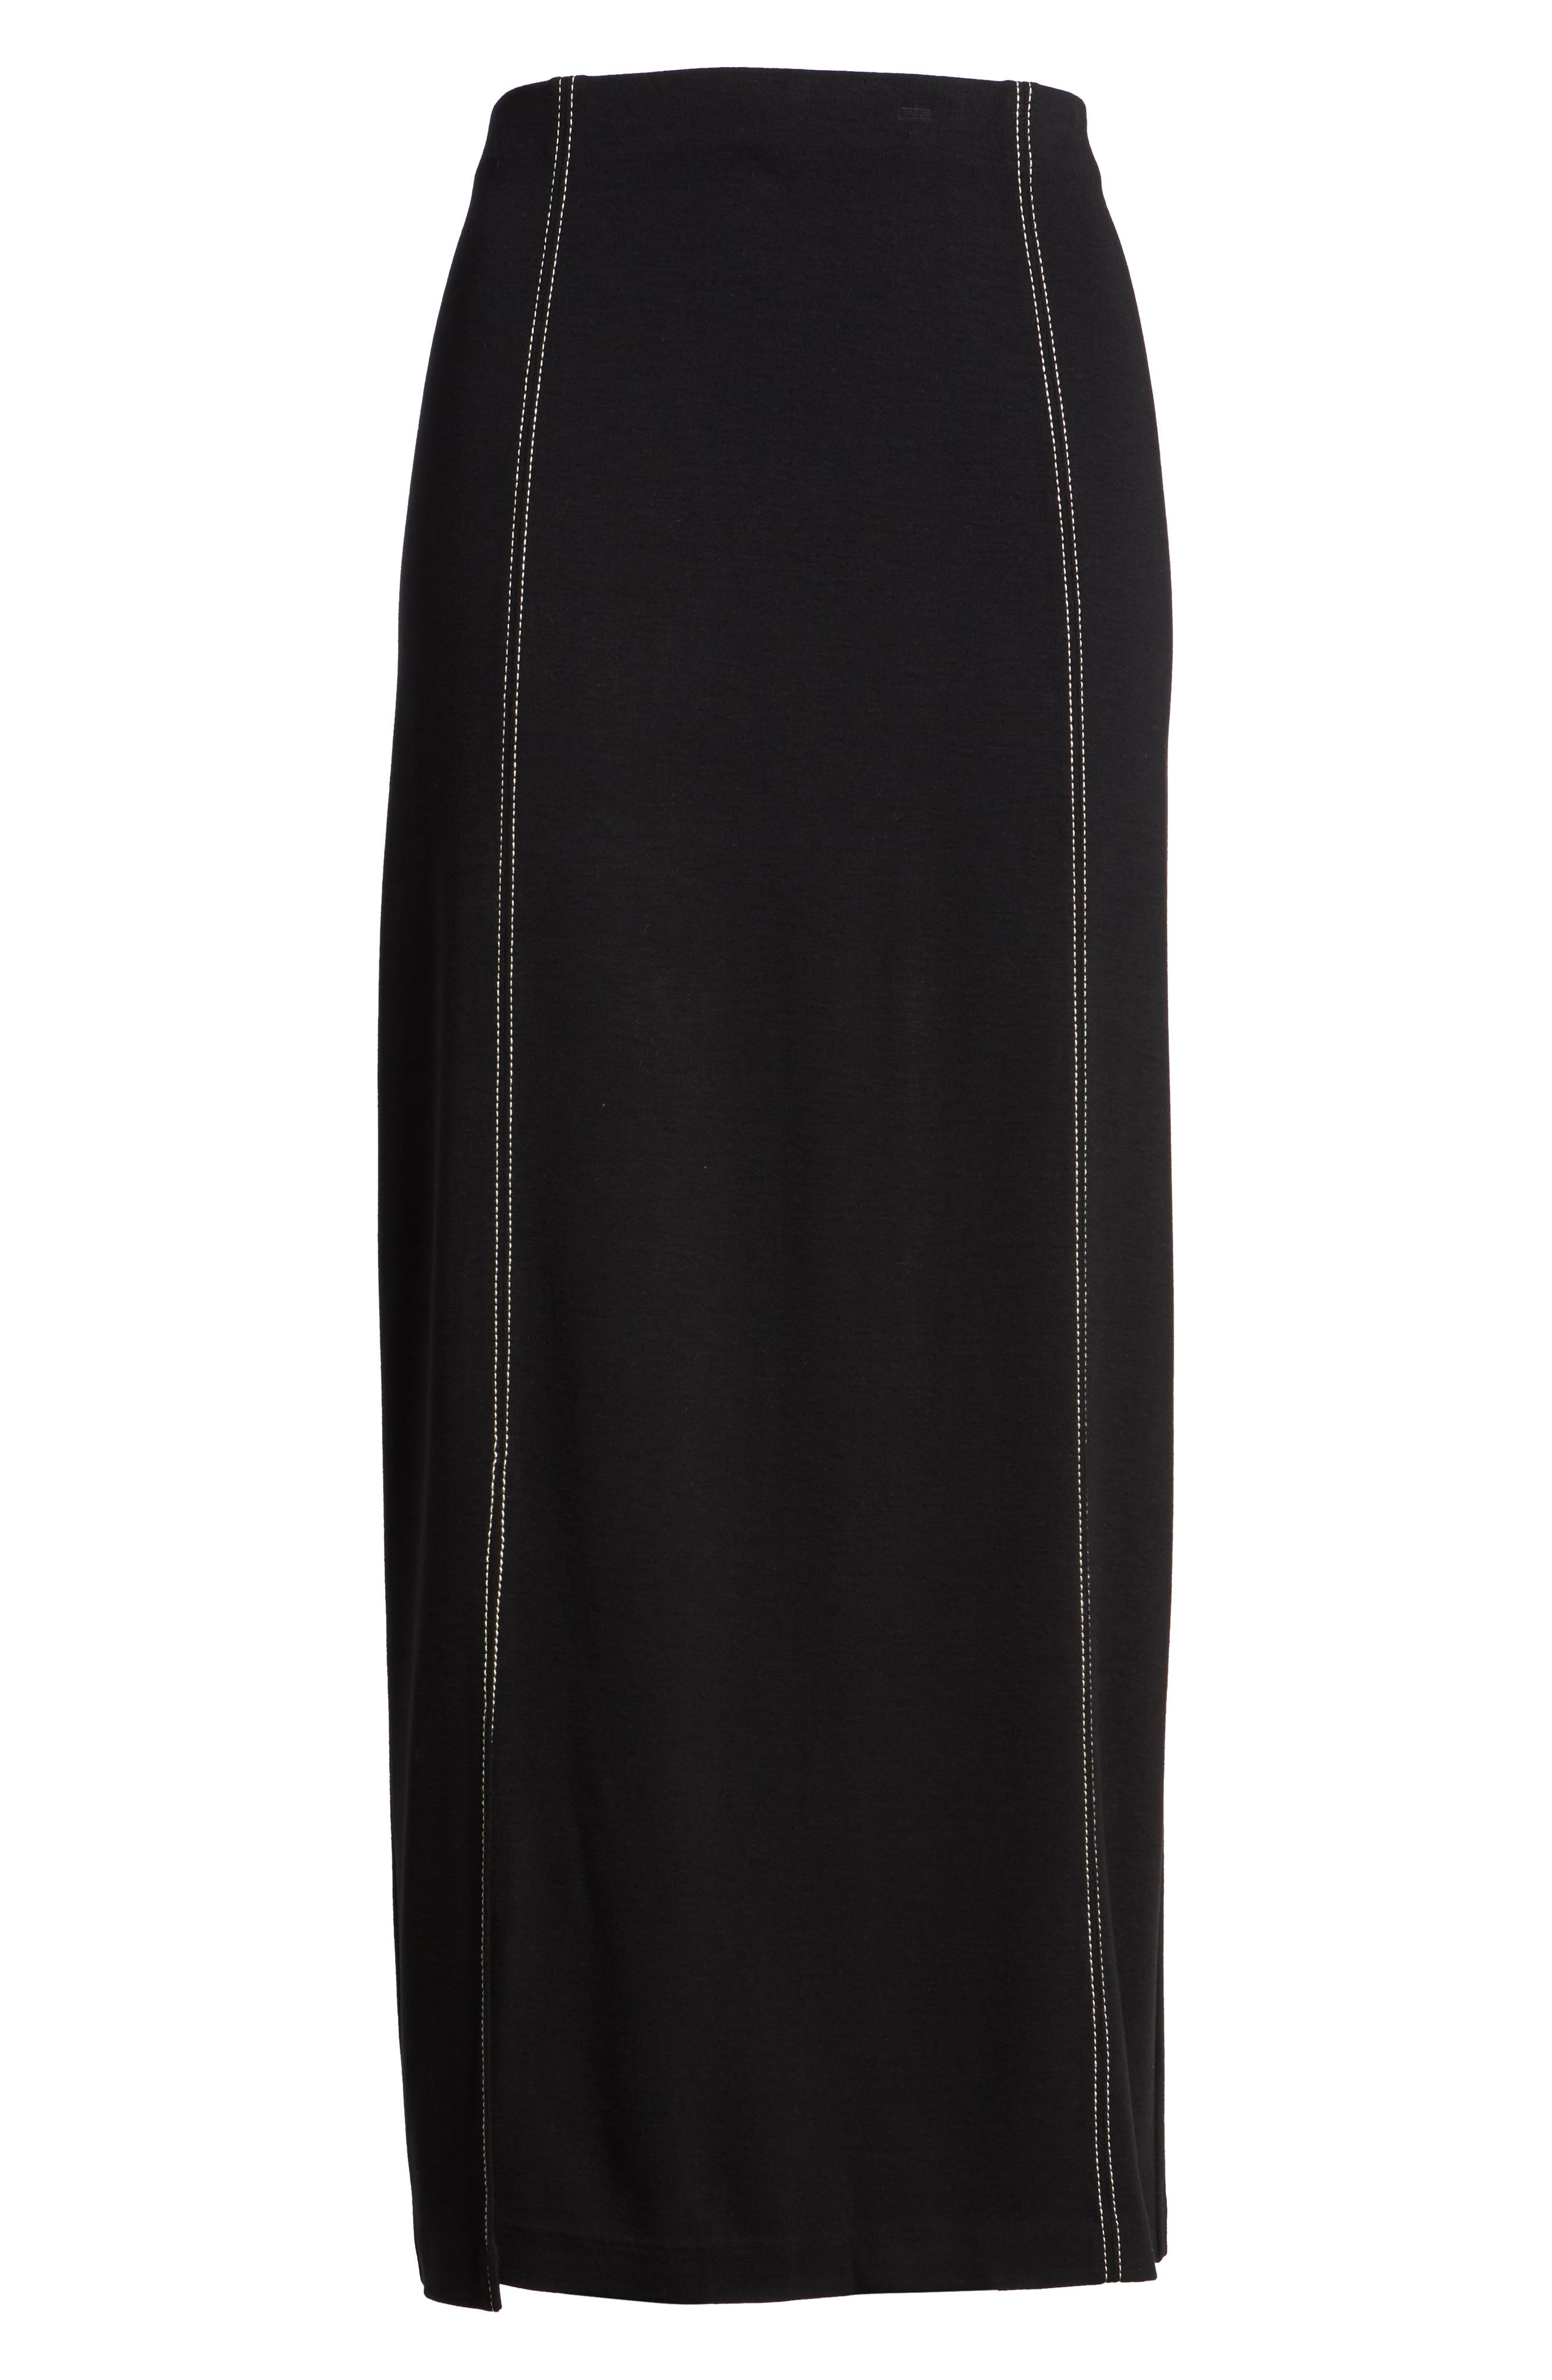 Break Out Maxi Skirt,                             Alternate thumbnail 6, color,                             Black Onyx